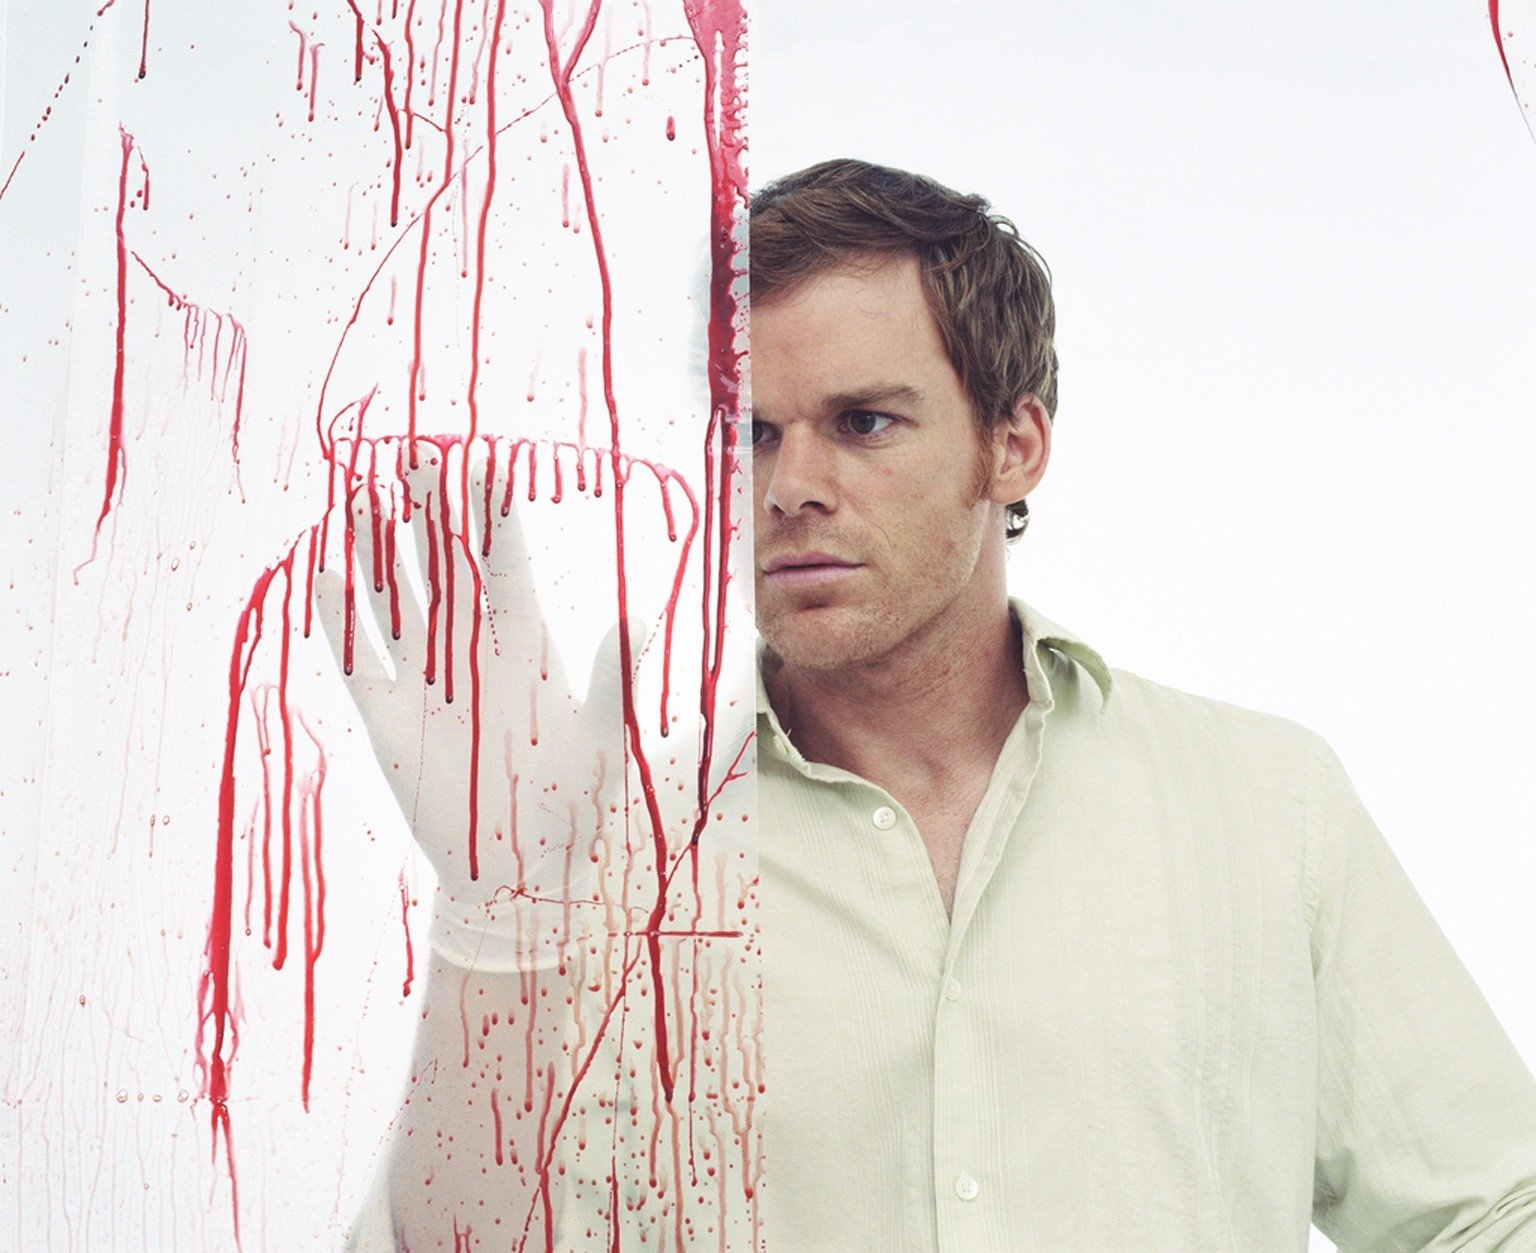 Televisieprogramma - Dexter  Michael C. Hall Dexter Morgan Wallpaper